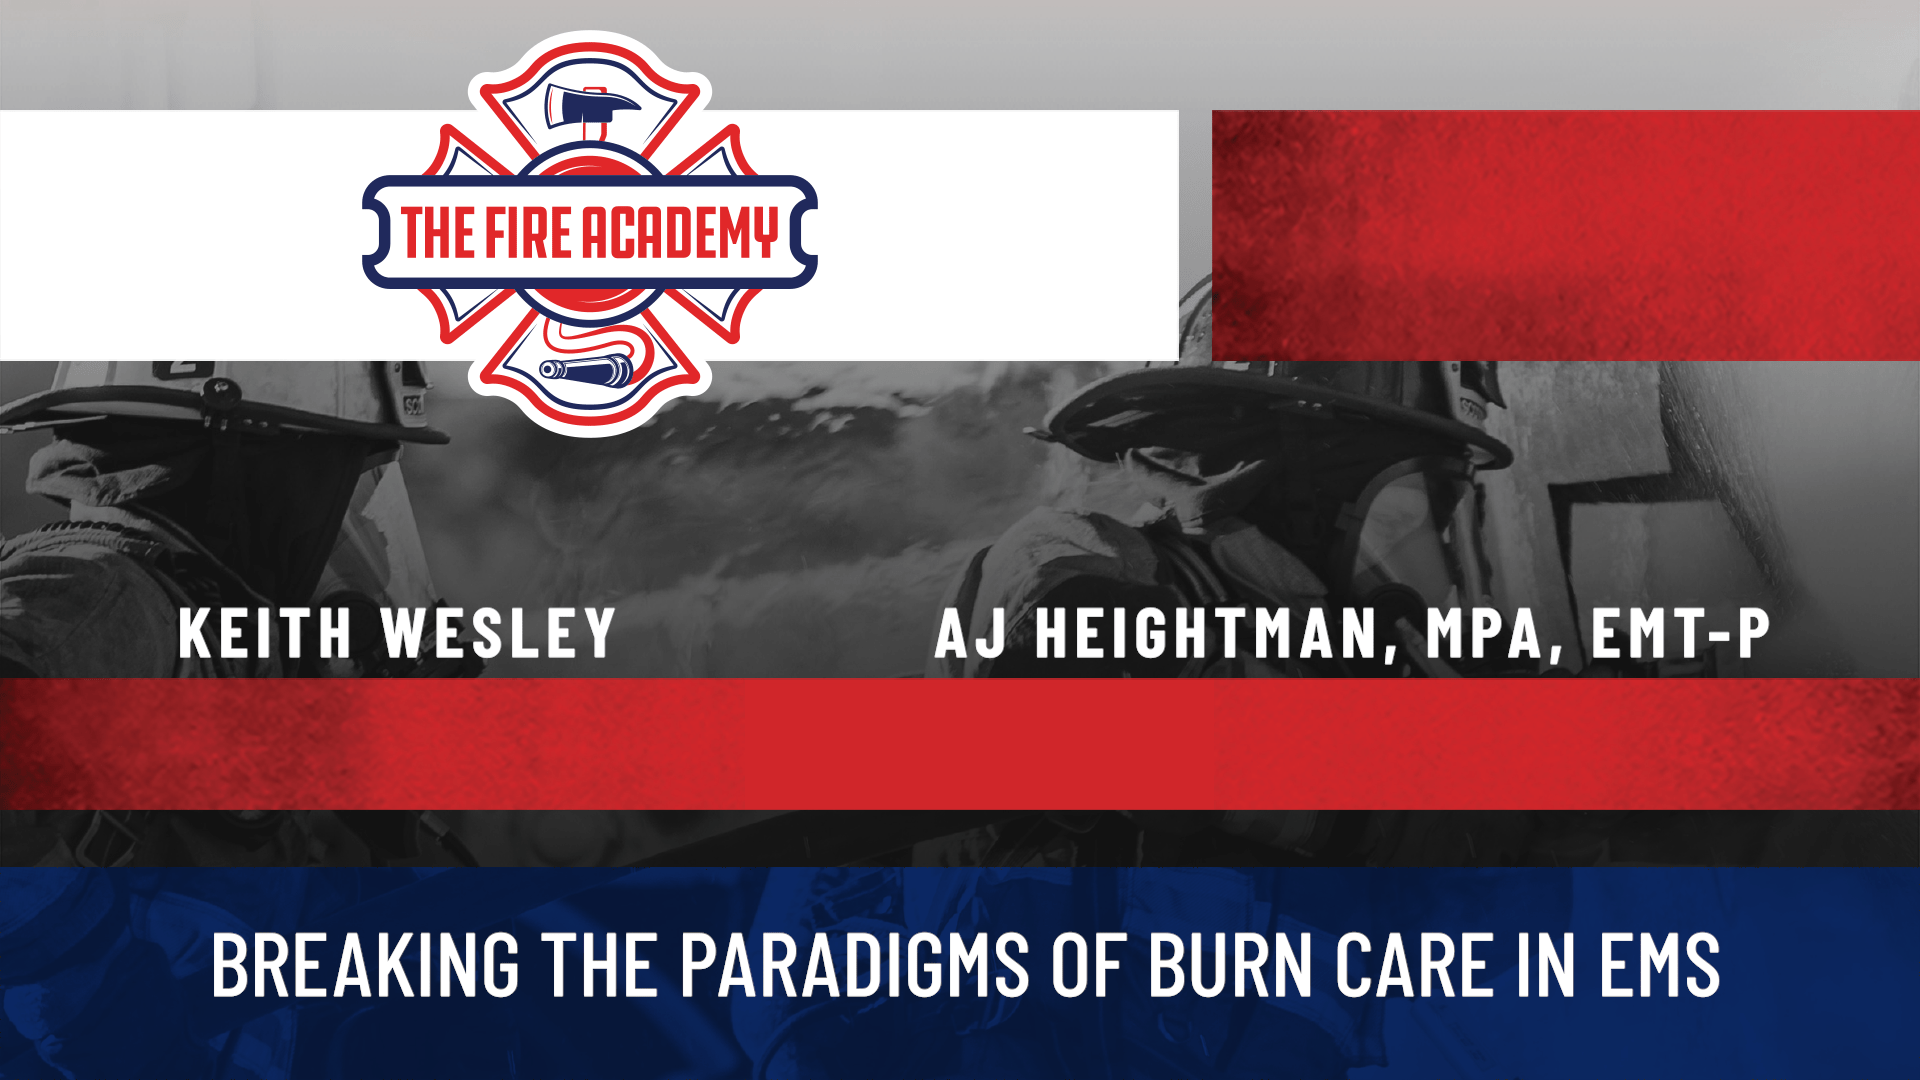 Breaking the Paradigms of Burn Care in EMS